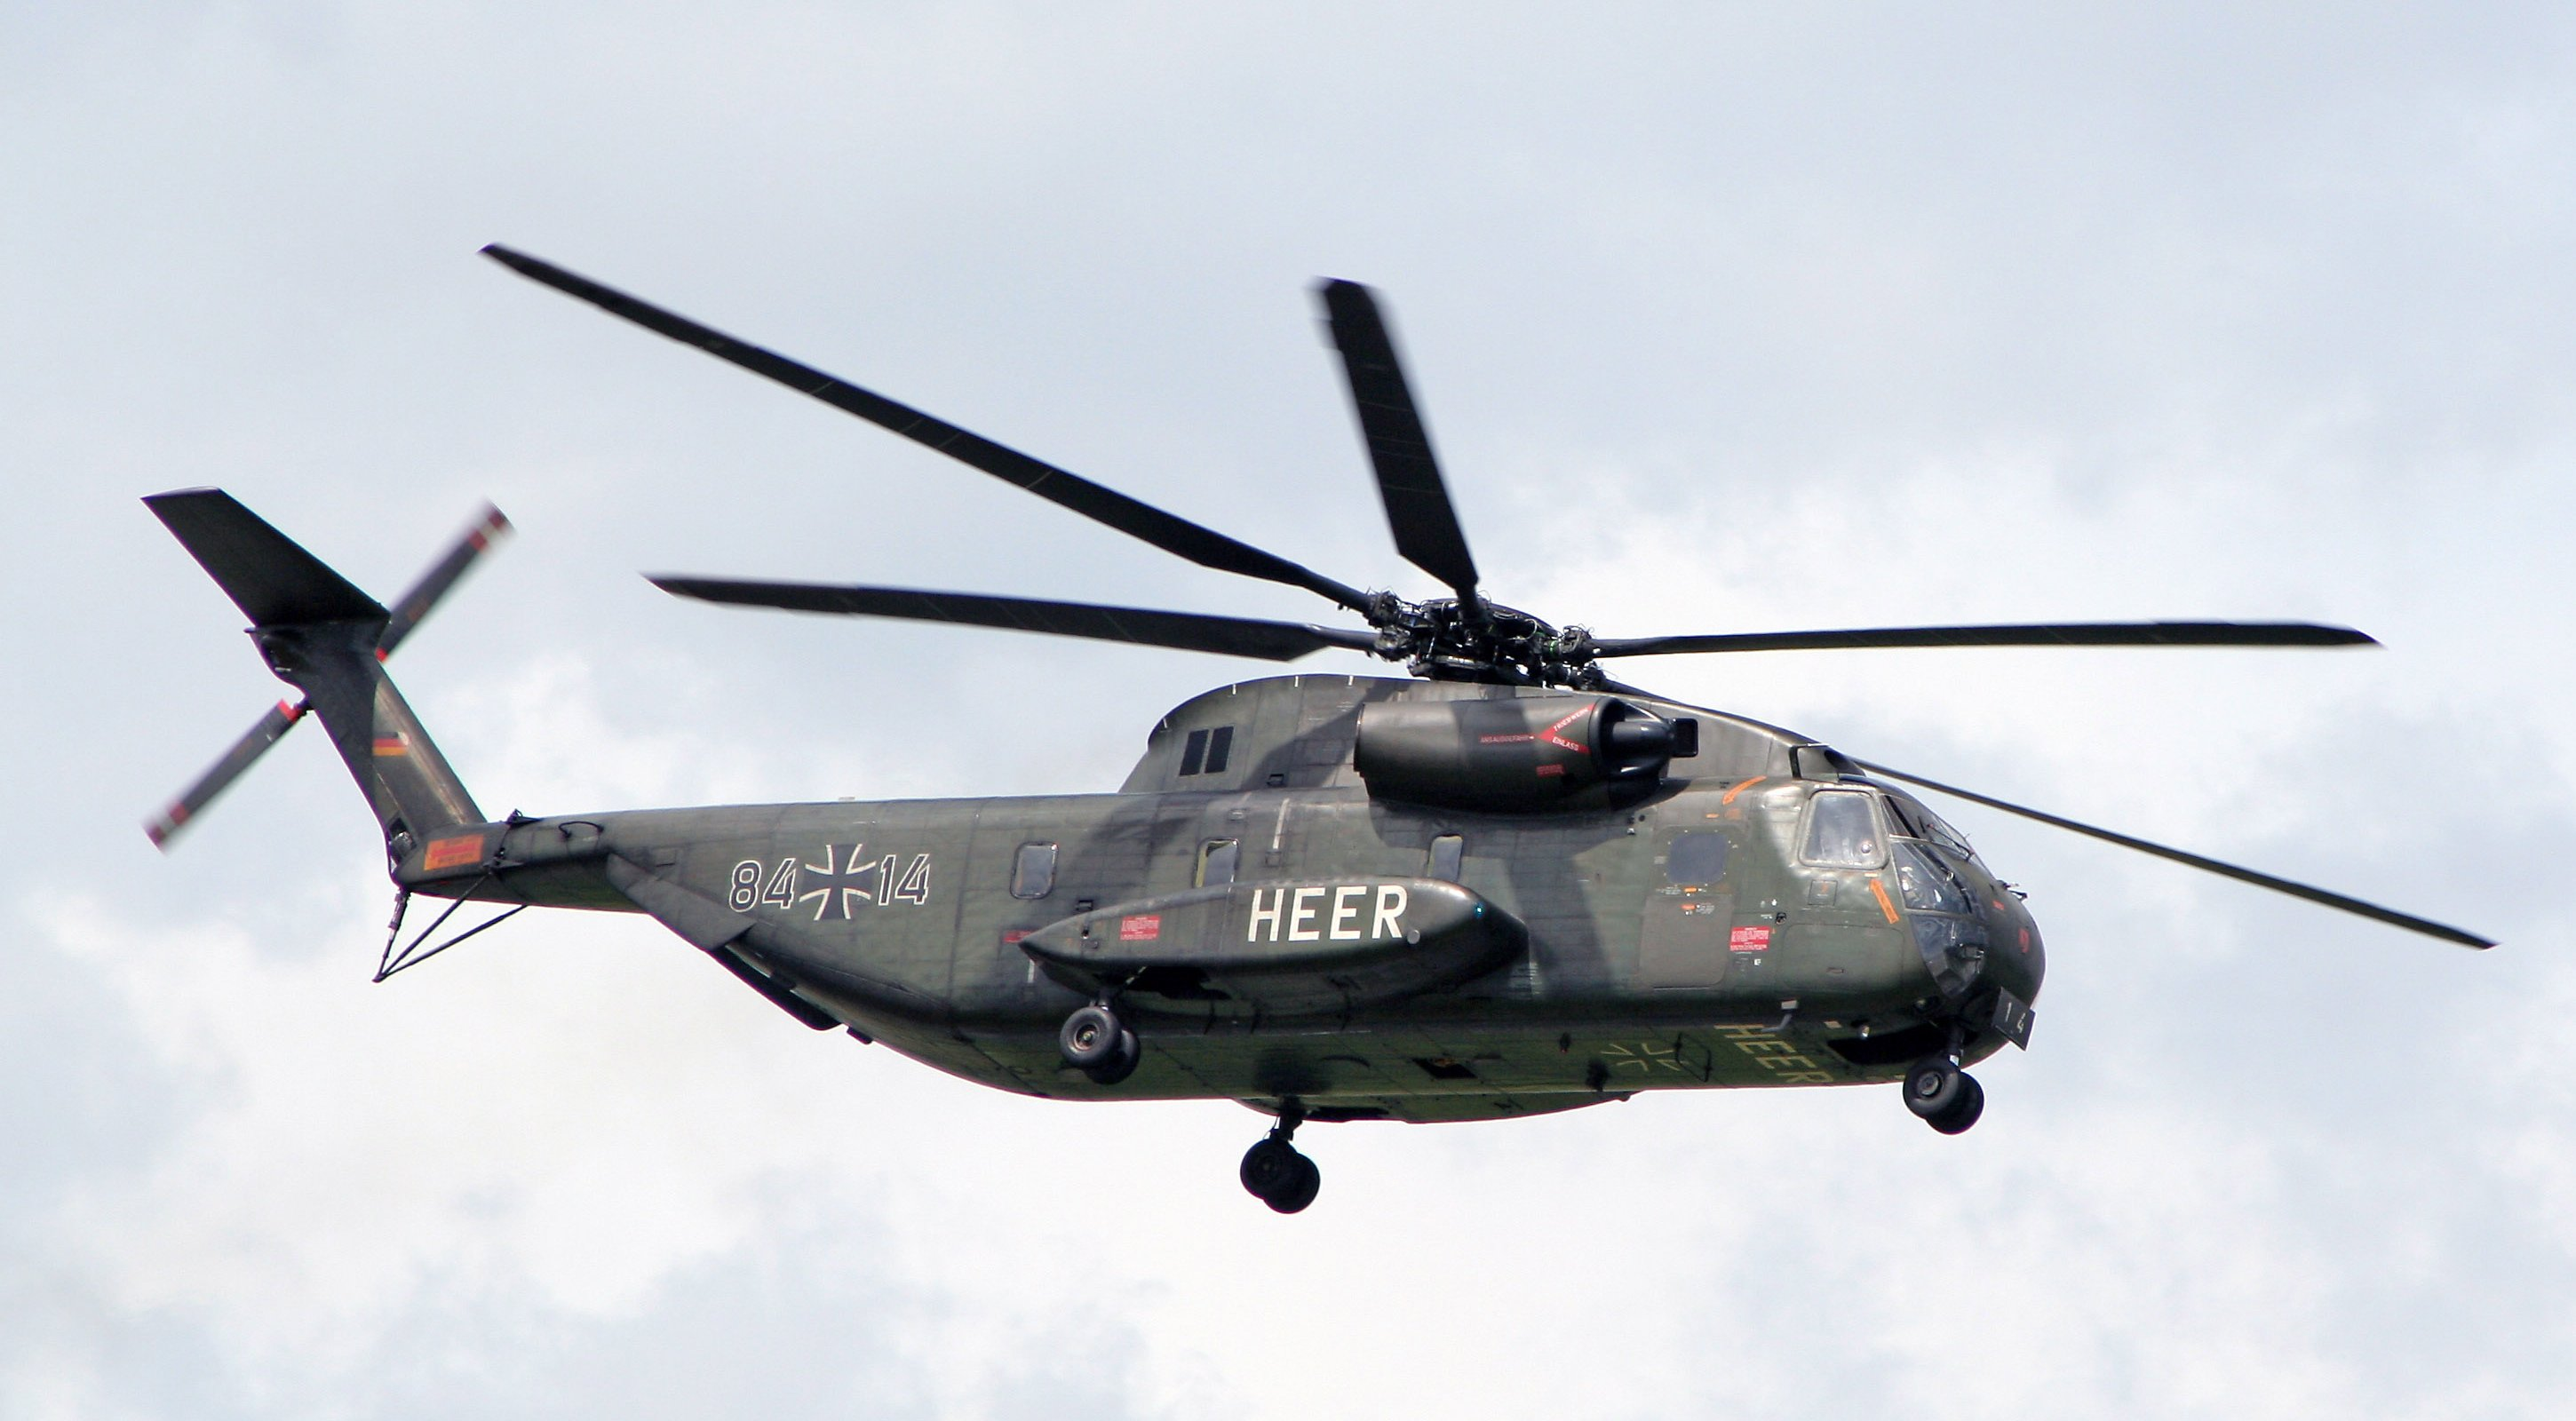 sikorsky ch 53k heavy lift helicopter with Forums on Ch 53k King Stallion together with Hlr furthermore MH 53 Pave Low furthermore Ch 53k Operational Test Helicopter Contract Issued also 699353.